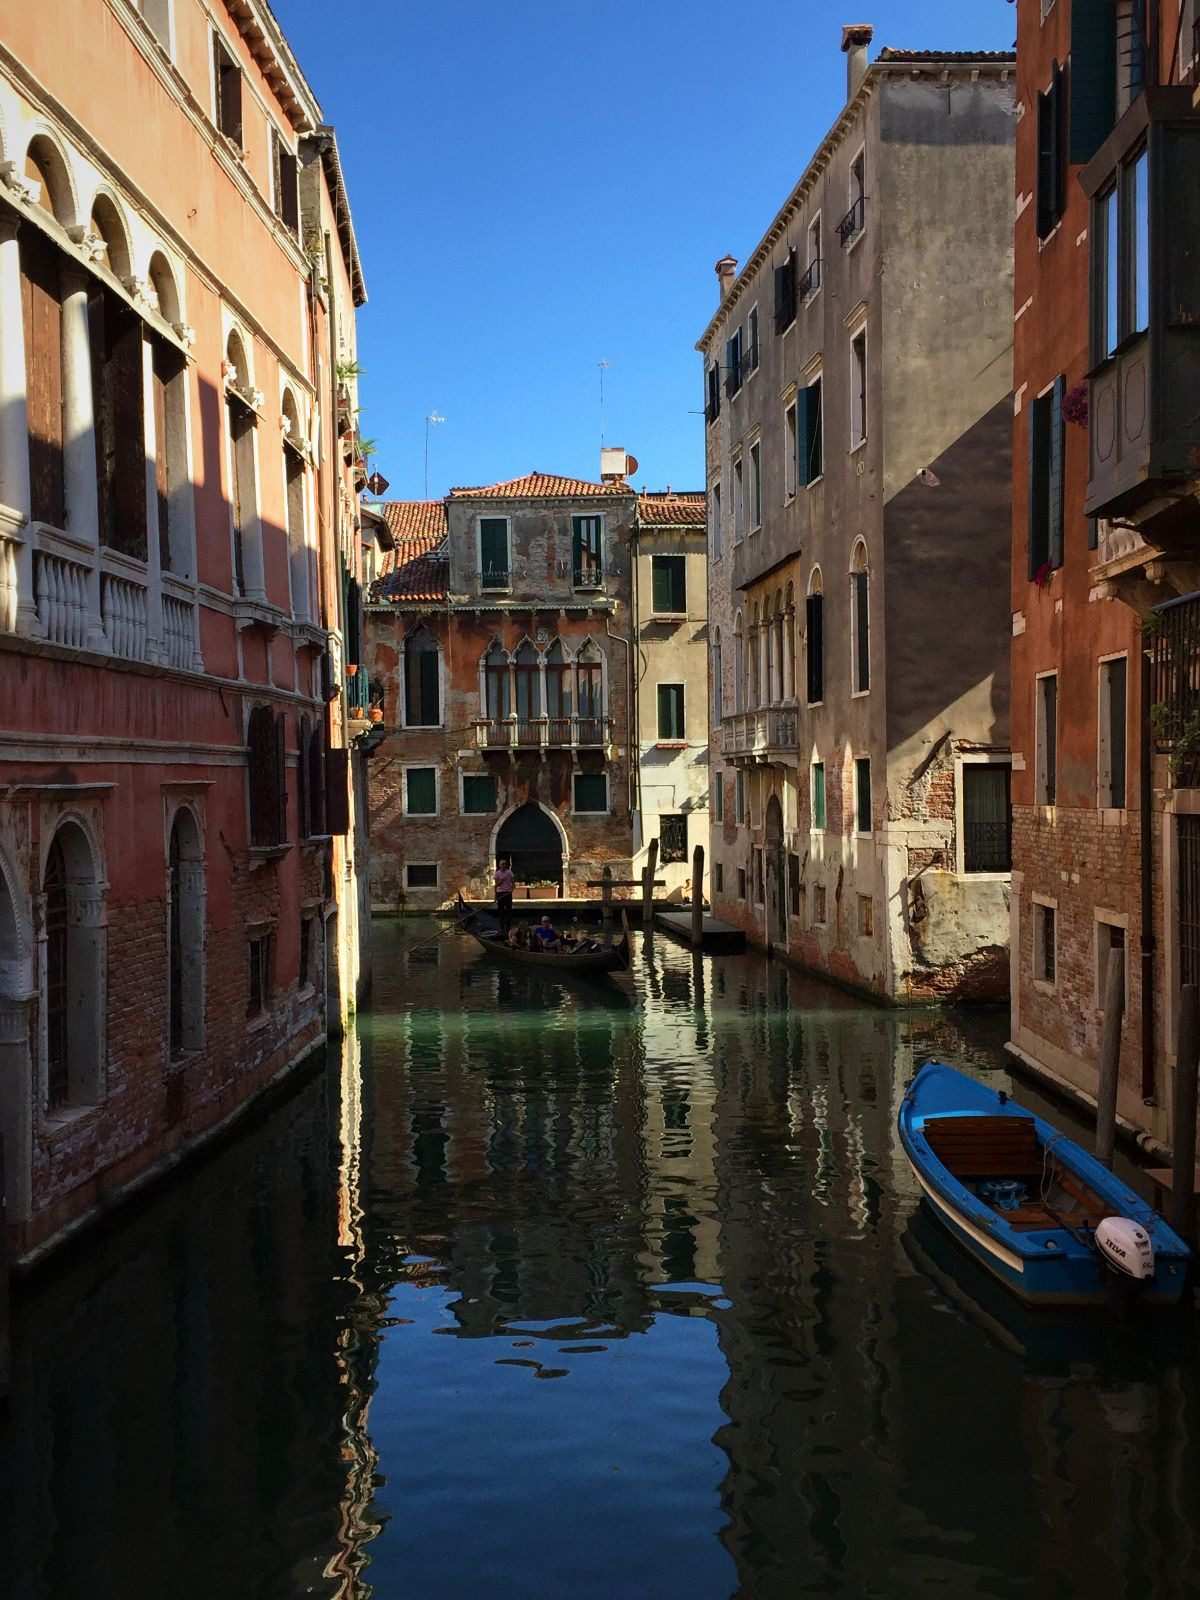 2018 European travel review: Canal in Venice, Italy